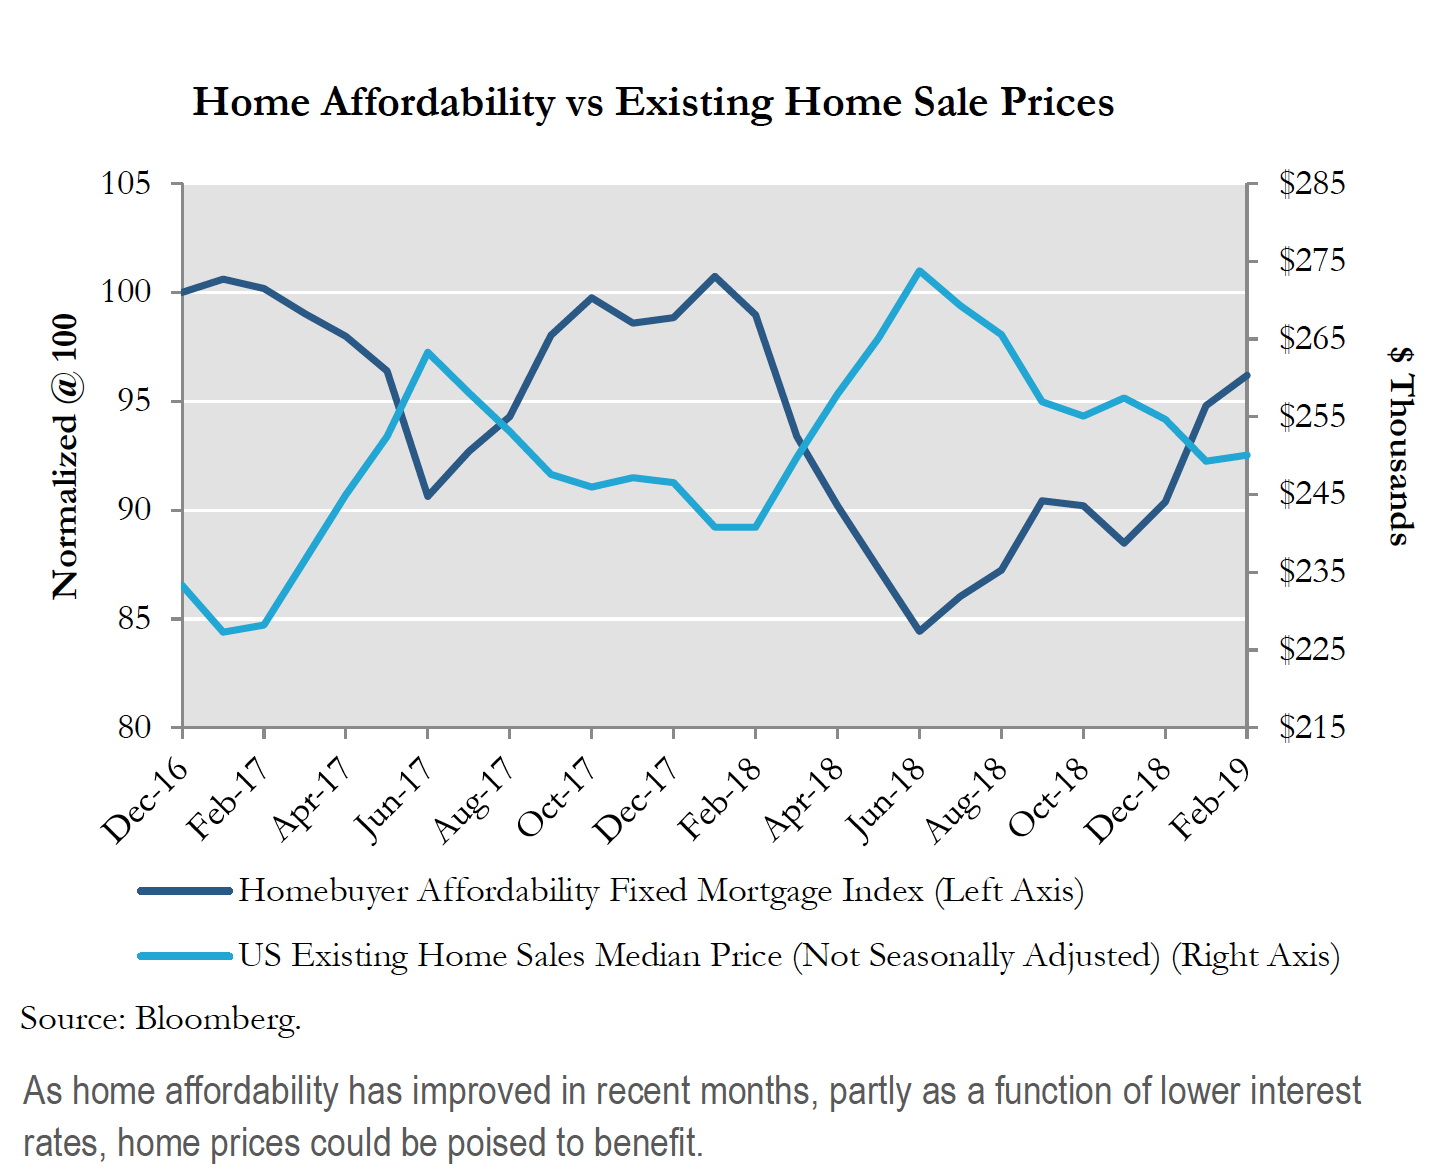 Home Affordability vs Existing Home Sale Prices